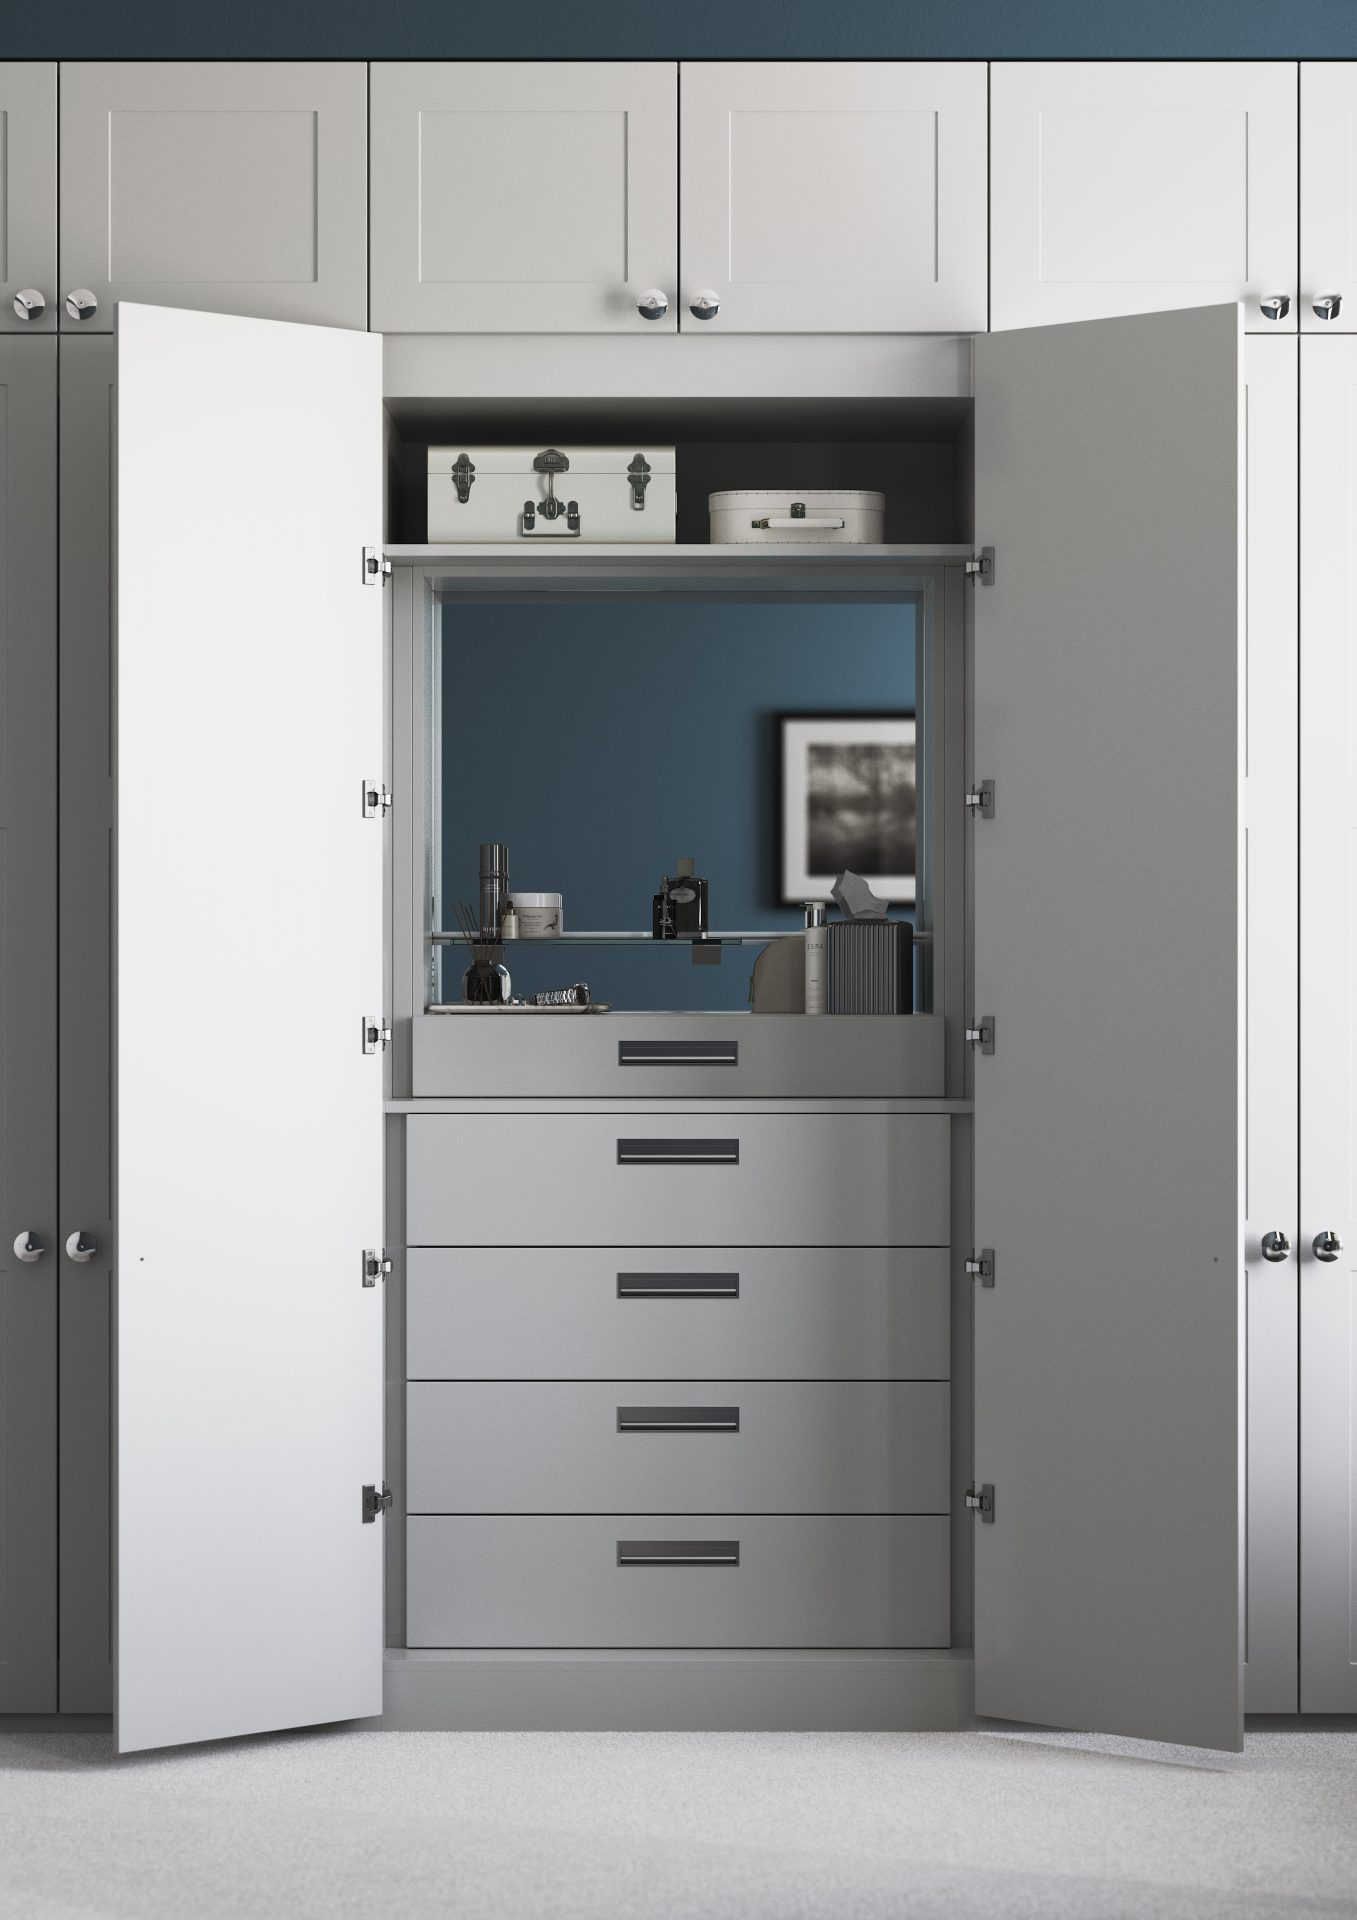 Grooming Unit with internal four drawer insert